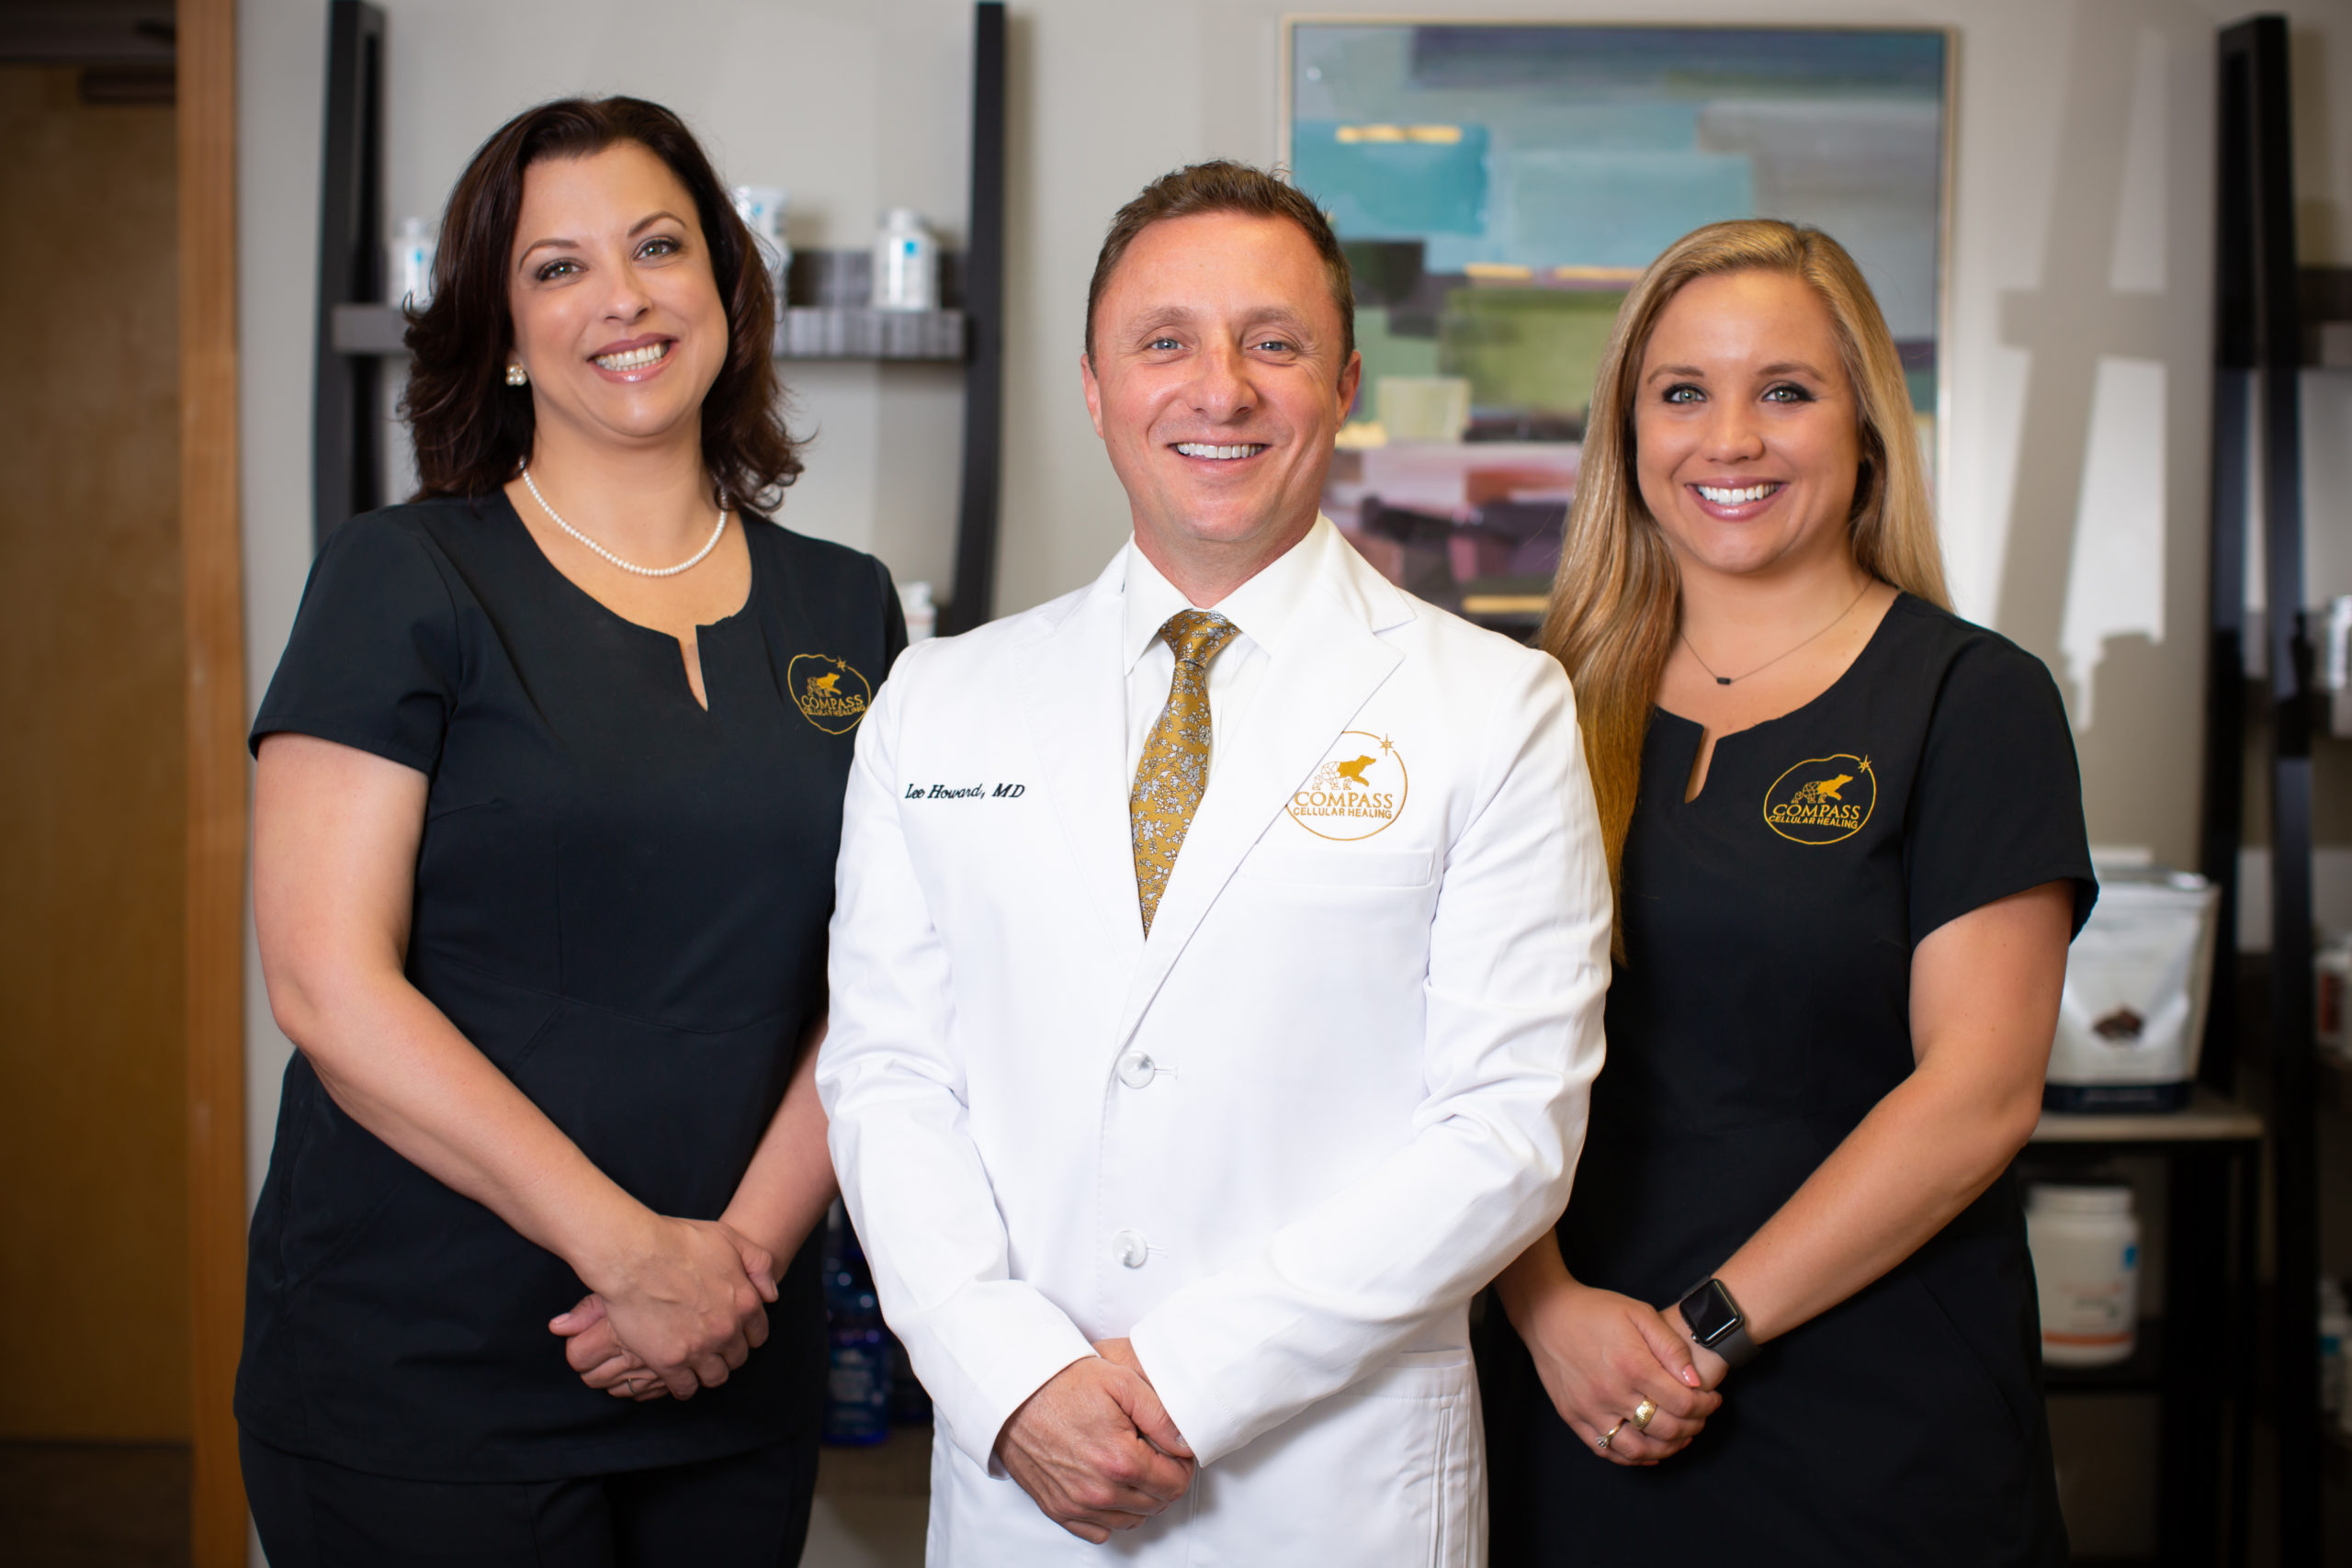 Physician in white coat with staff